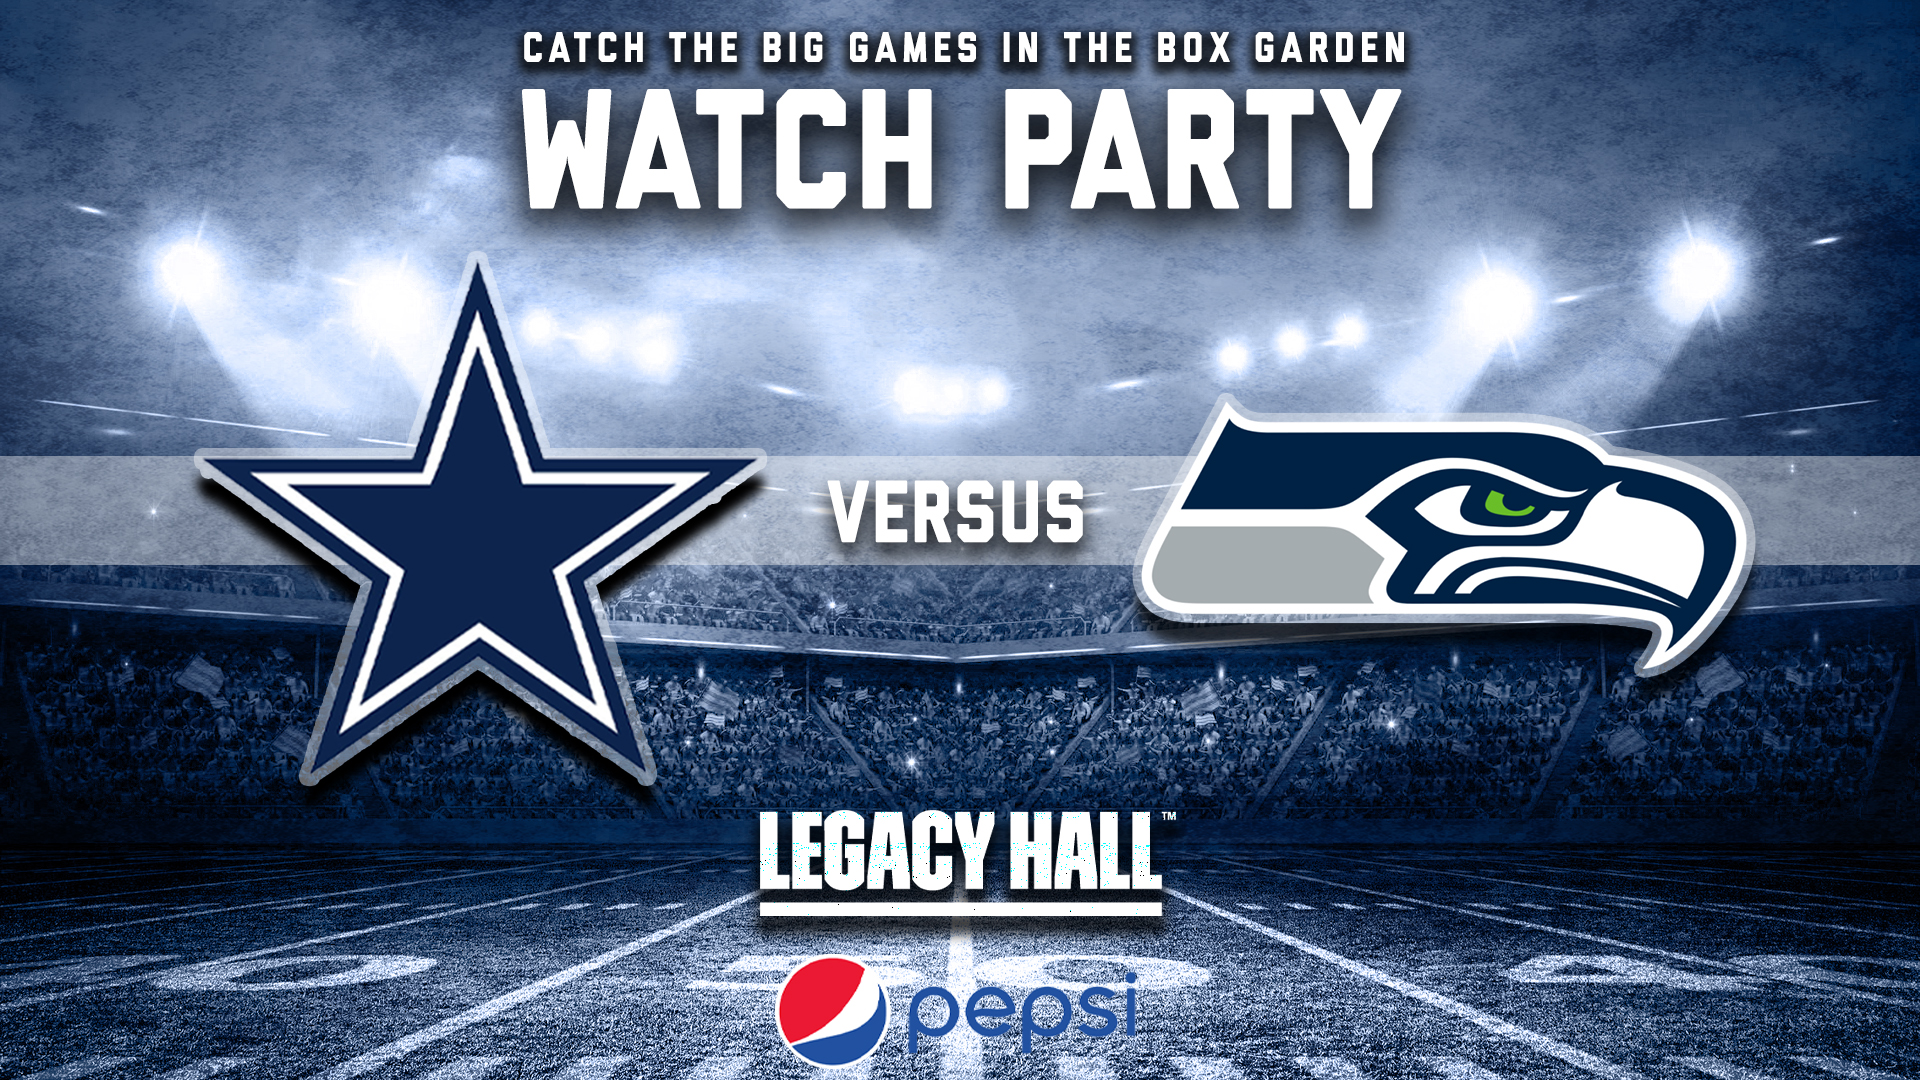 Promo image of Cowboys vs. Seahawks Watch Party